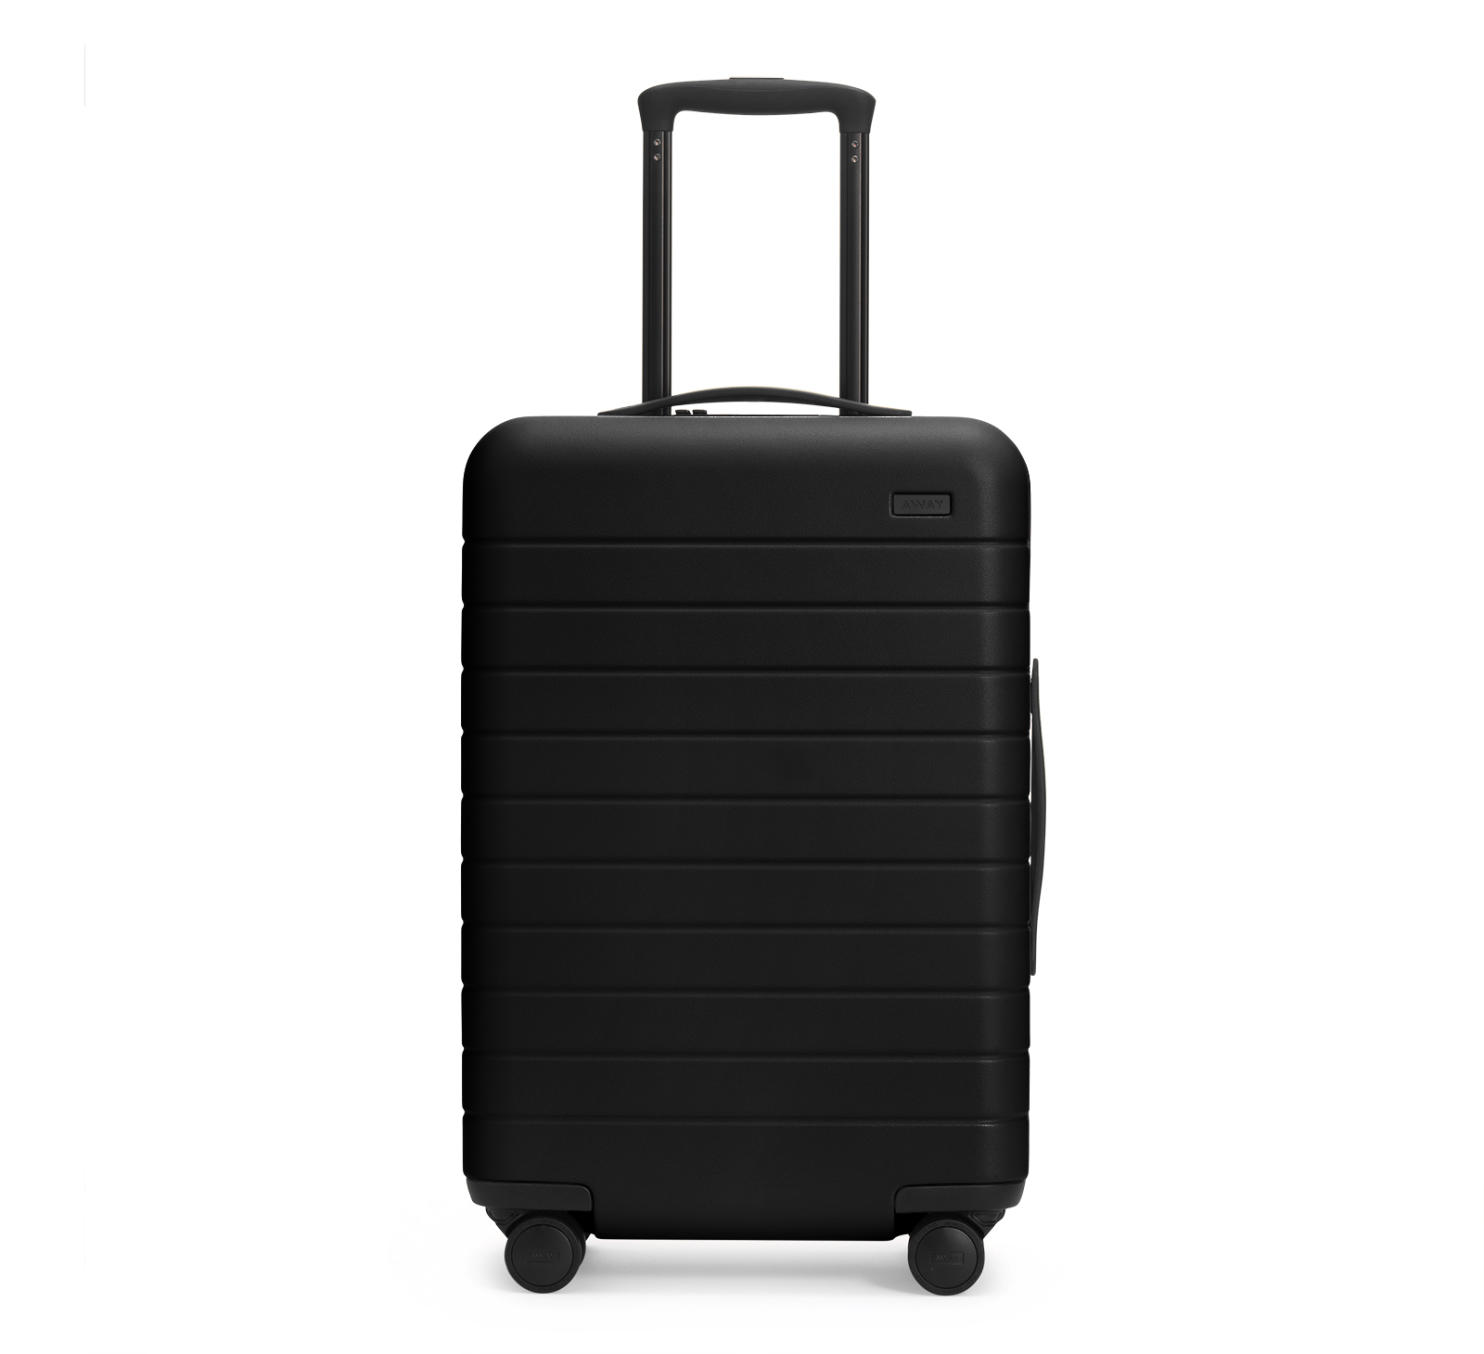 Away Carry-On Luggage Review